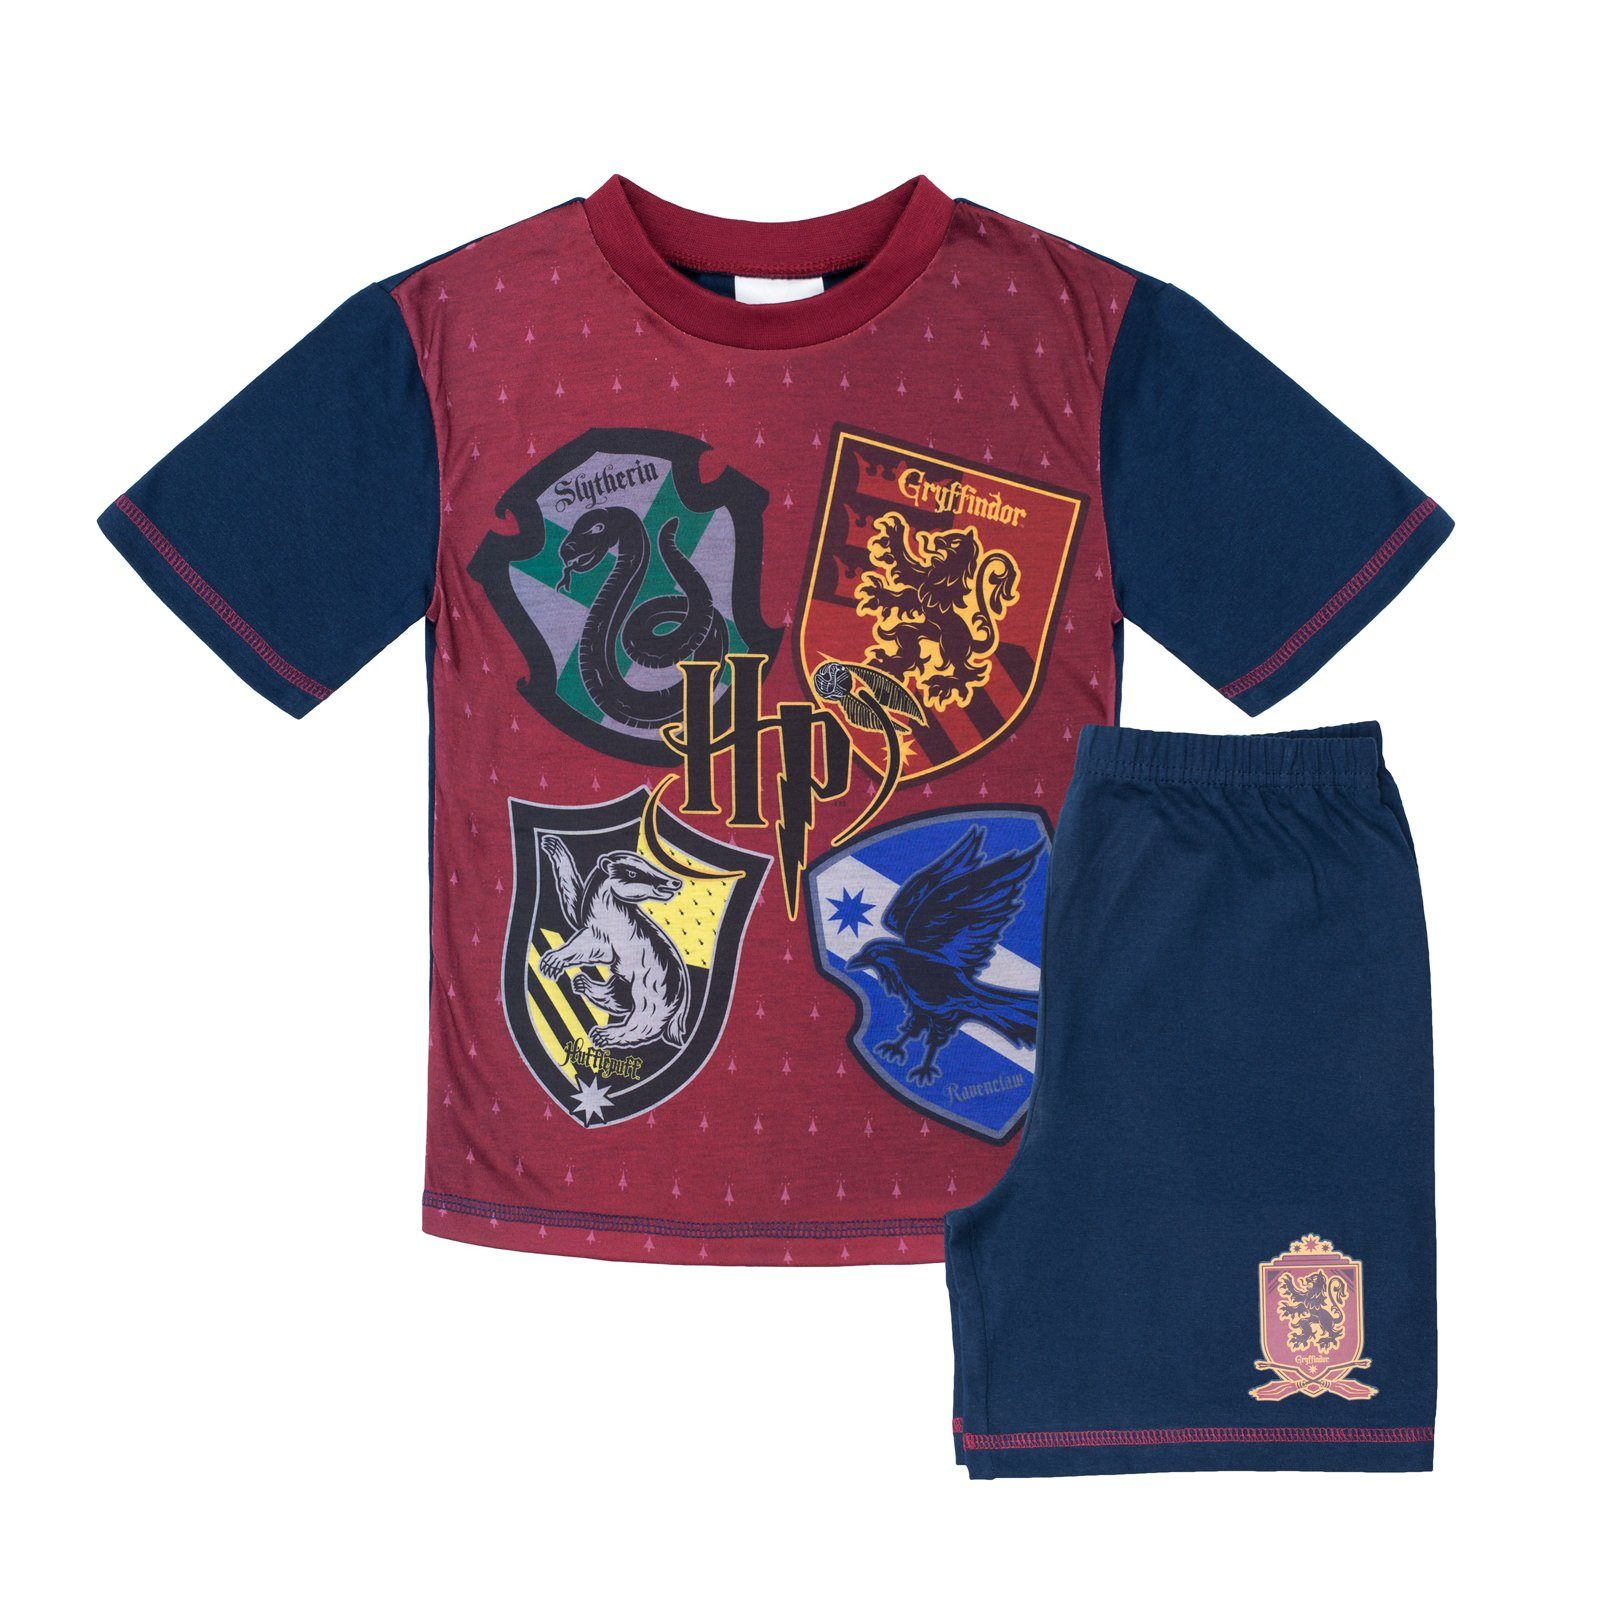 Harry Potter Short Pyjamas Boys Pyjamas Cool Clobber Limited